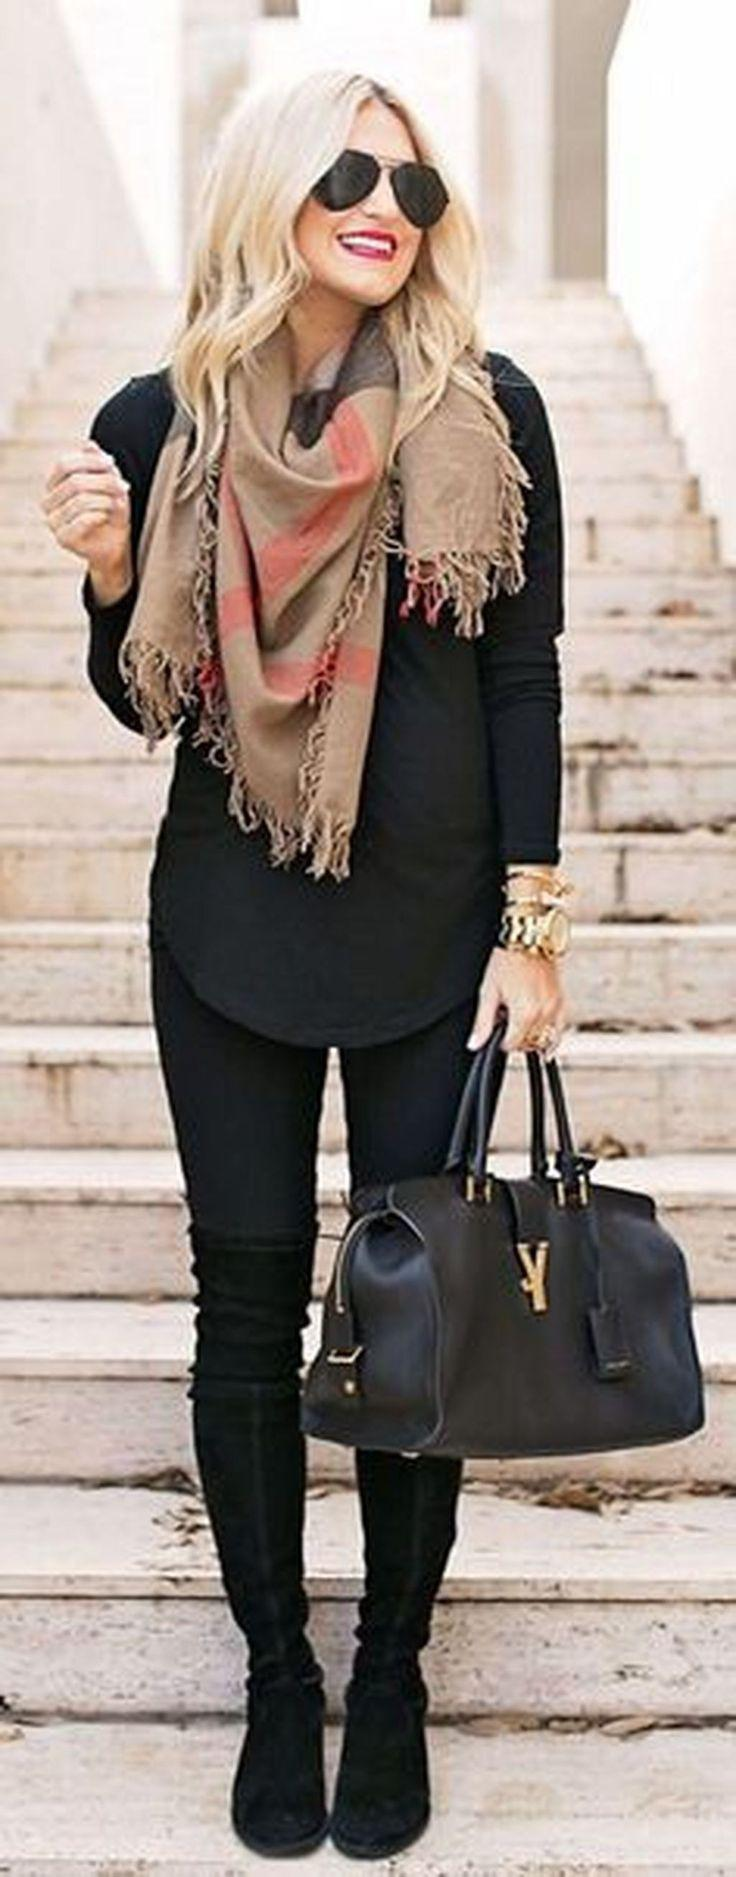 Casual Winter Outfits Ideas For Work 2018 38